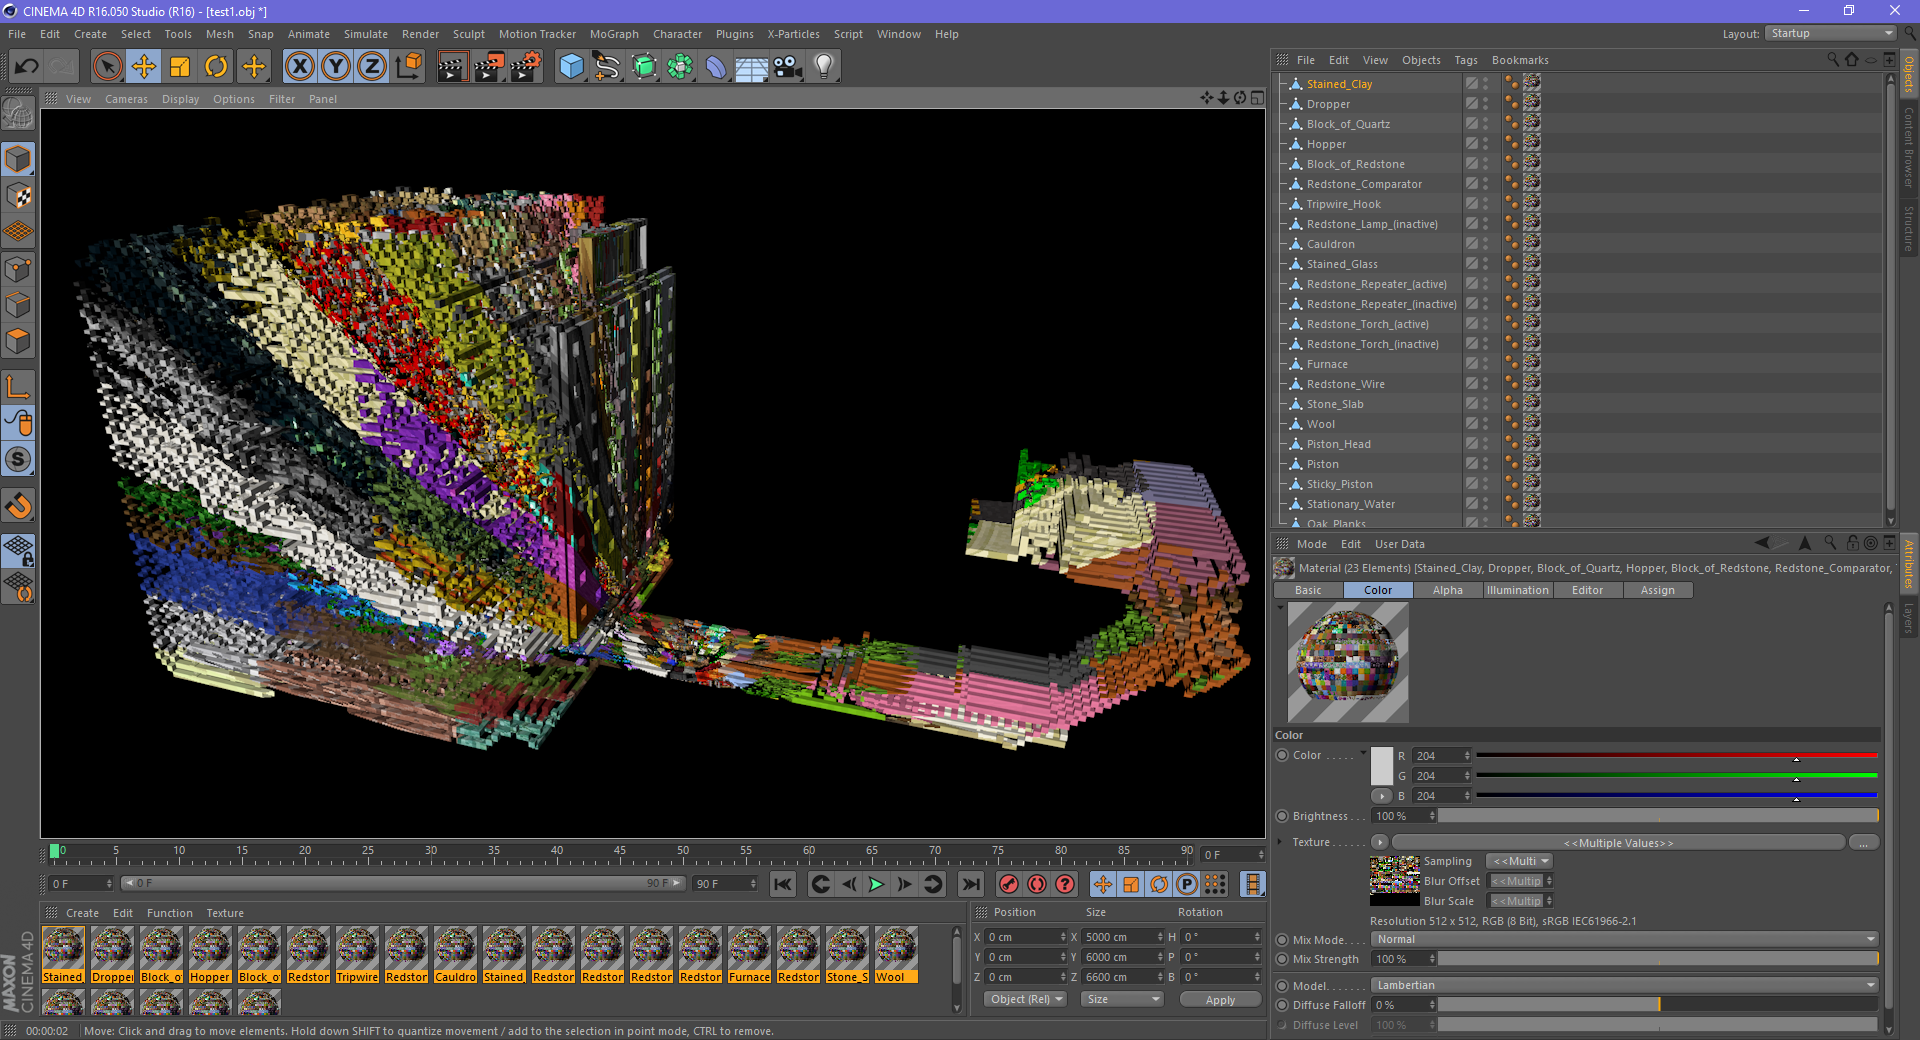 Texture mapping incorrect [Cinema 4D] · Issue #41 · erich666 ... on